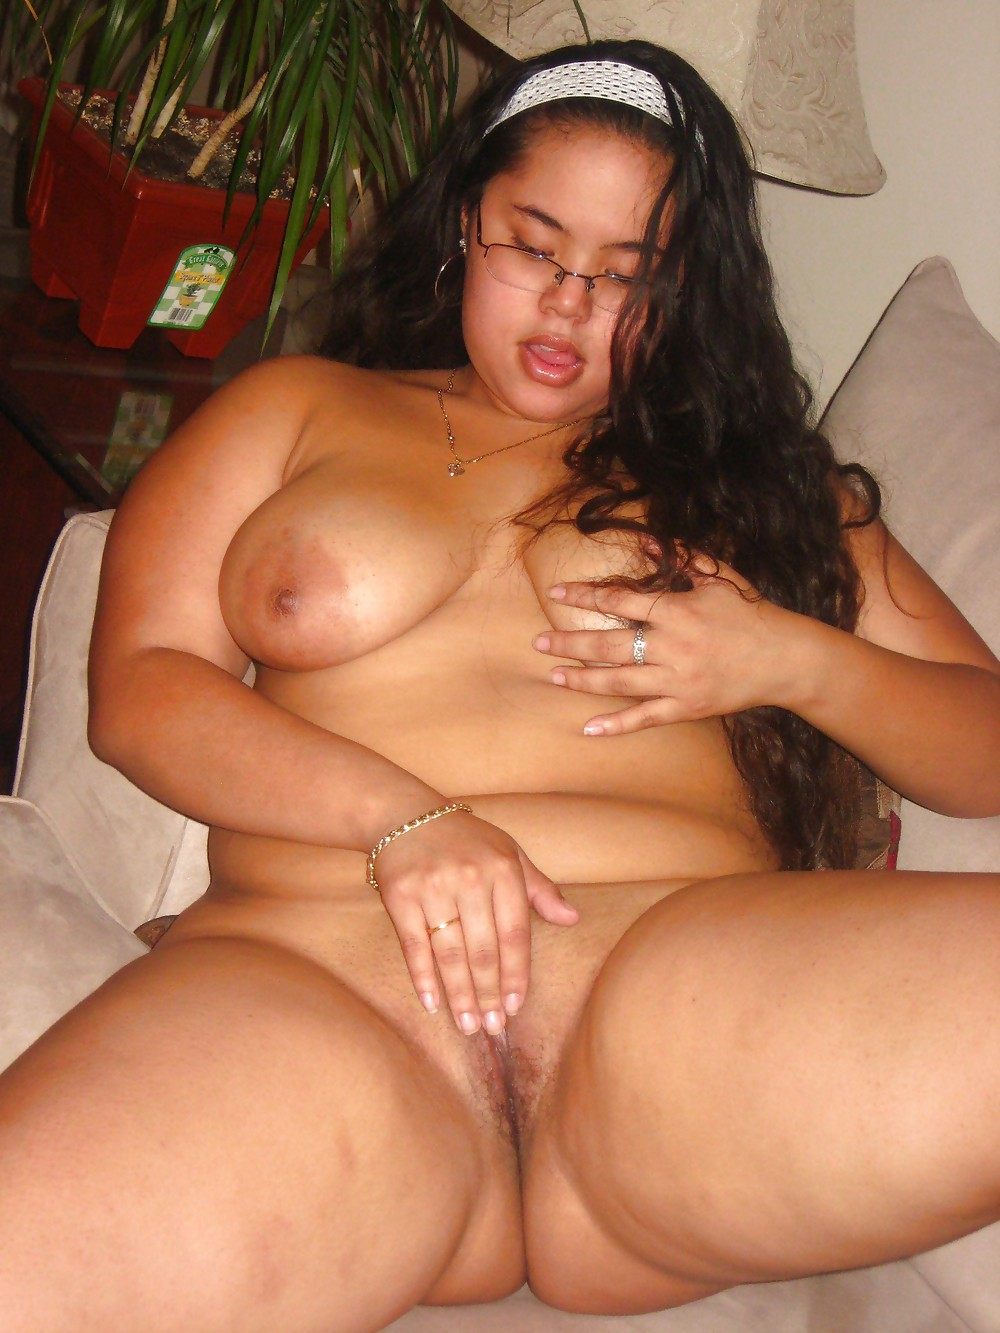 brazil-girl-fat-nude-free-high-porn